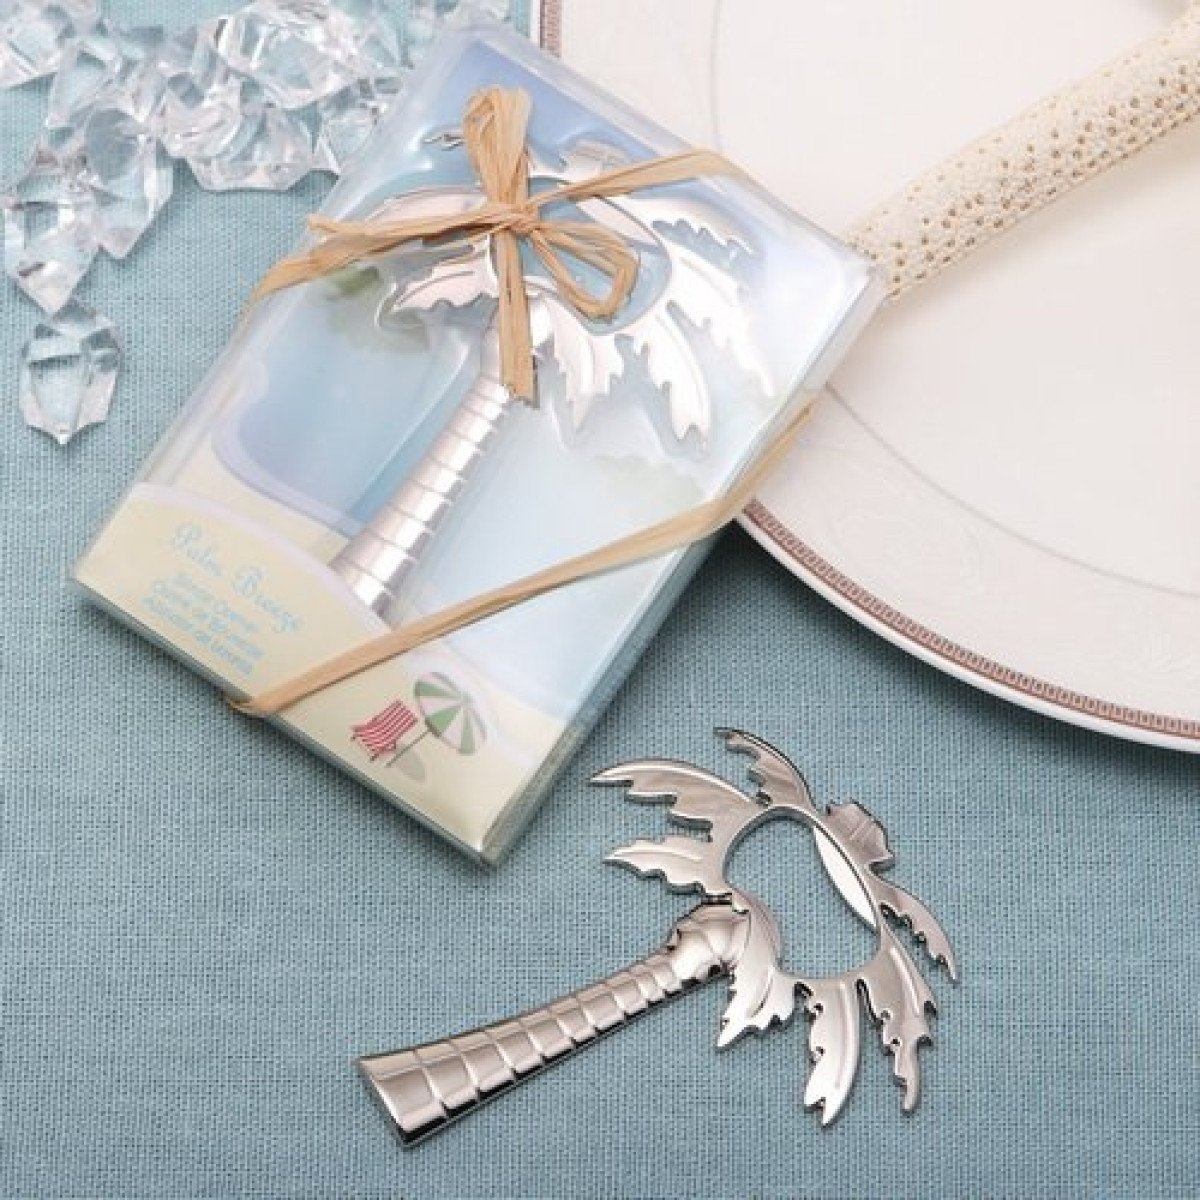 bottle opener wedding favors wedding gifts rom gifts wedding